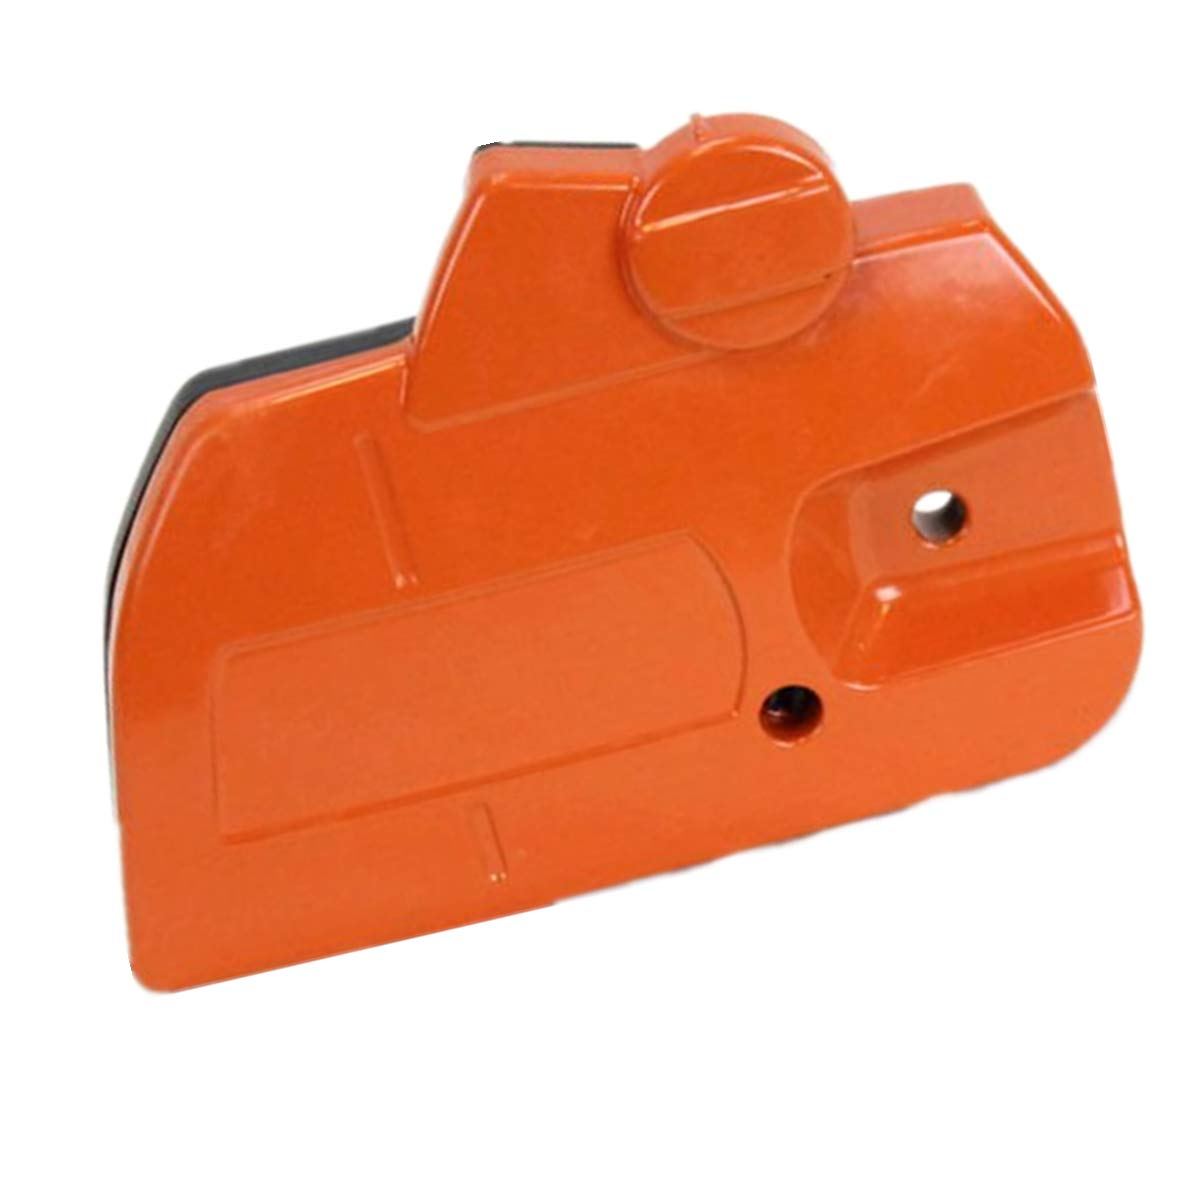 Notos Chain Brake Clutch Side Cover Fit for Husqvarna 445 450 Chainsaw Spare Parts Replaces 544097902 544097901 by Notos